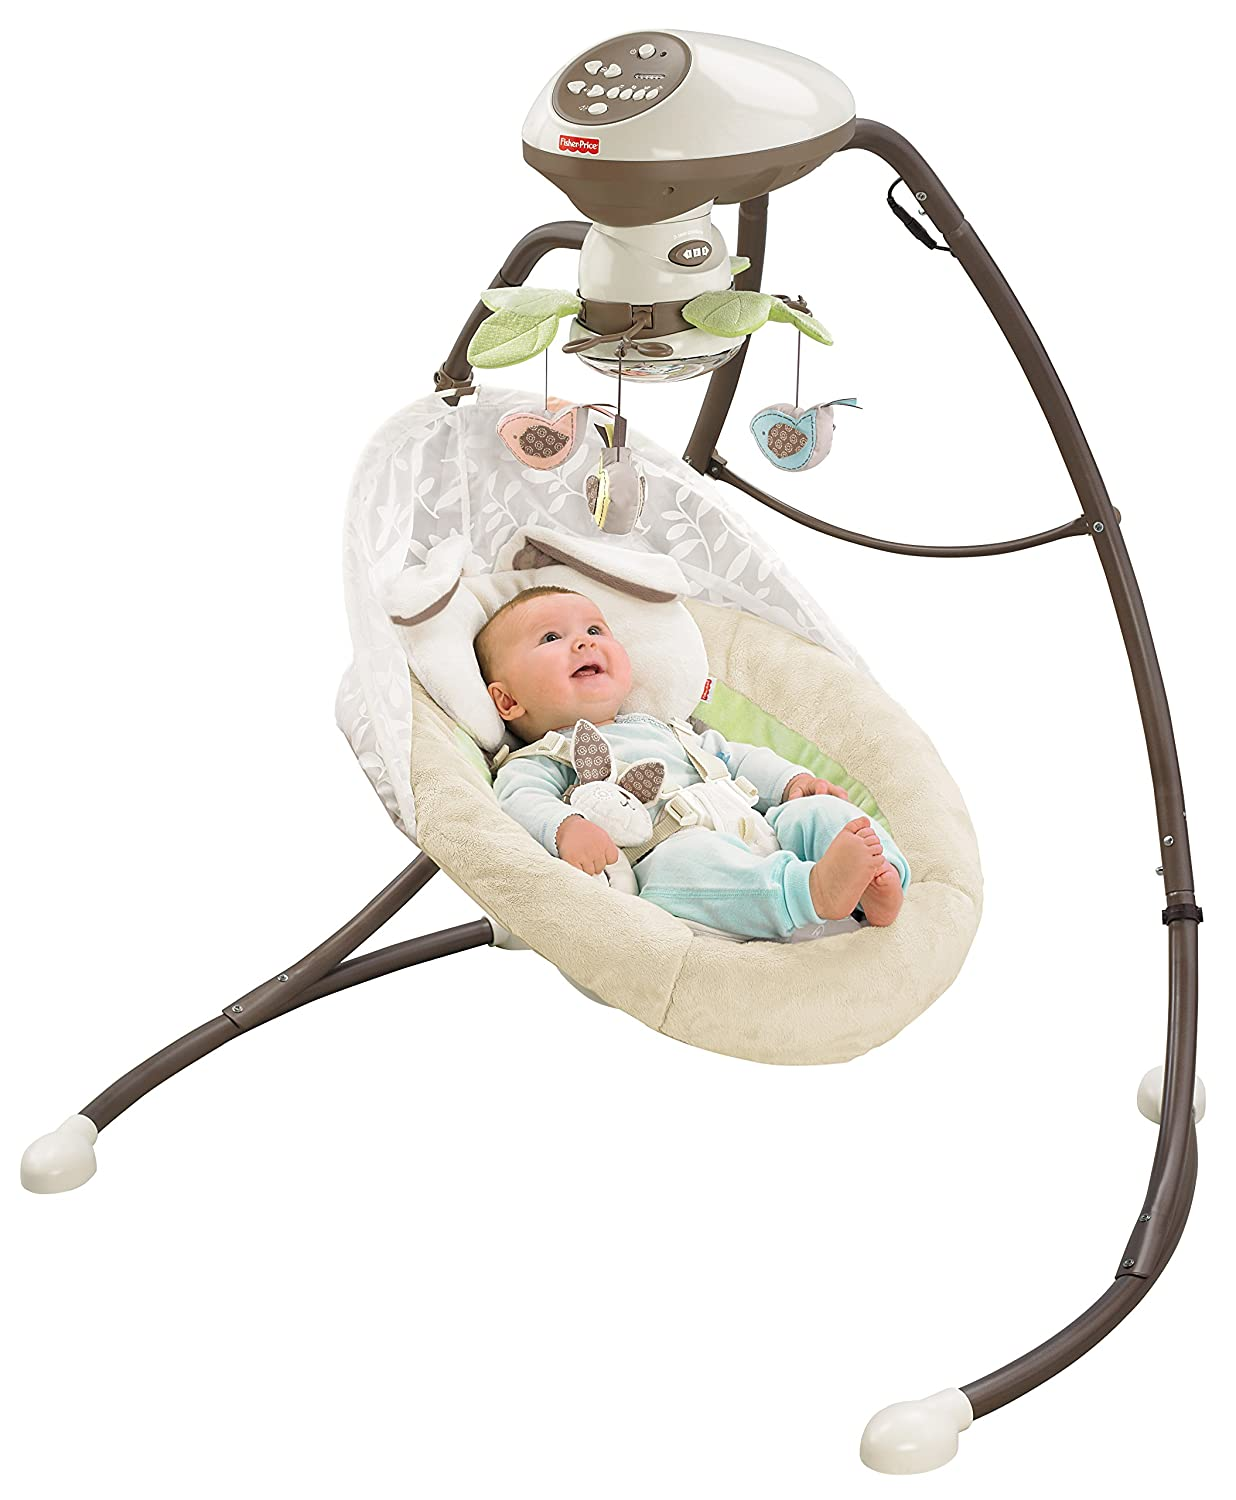 Fisher-Price Snugabunny Cradle 'N Swing, Best Baby Swings, Good Baby Swing